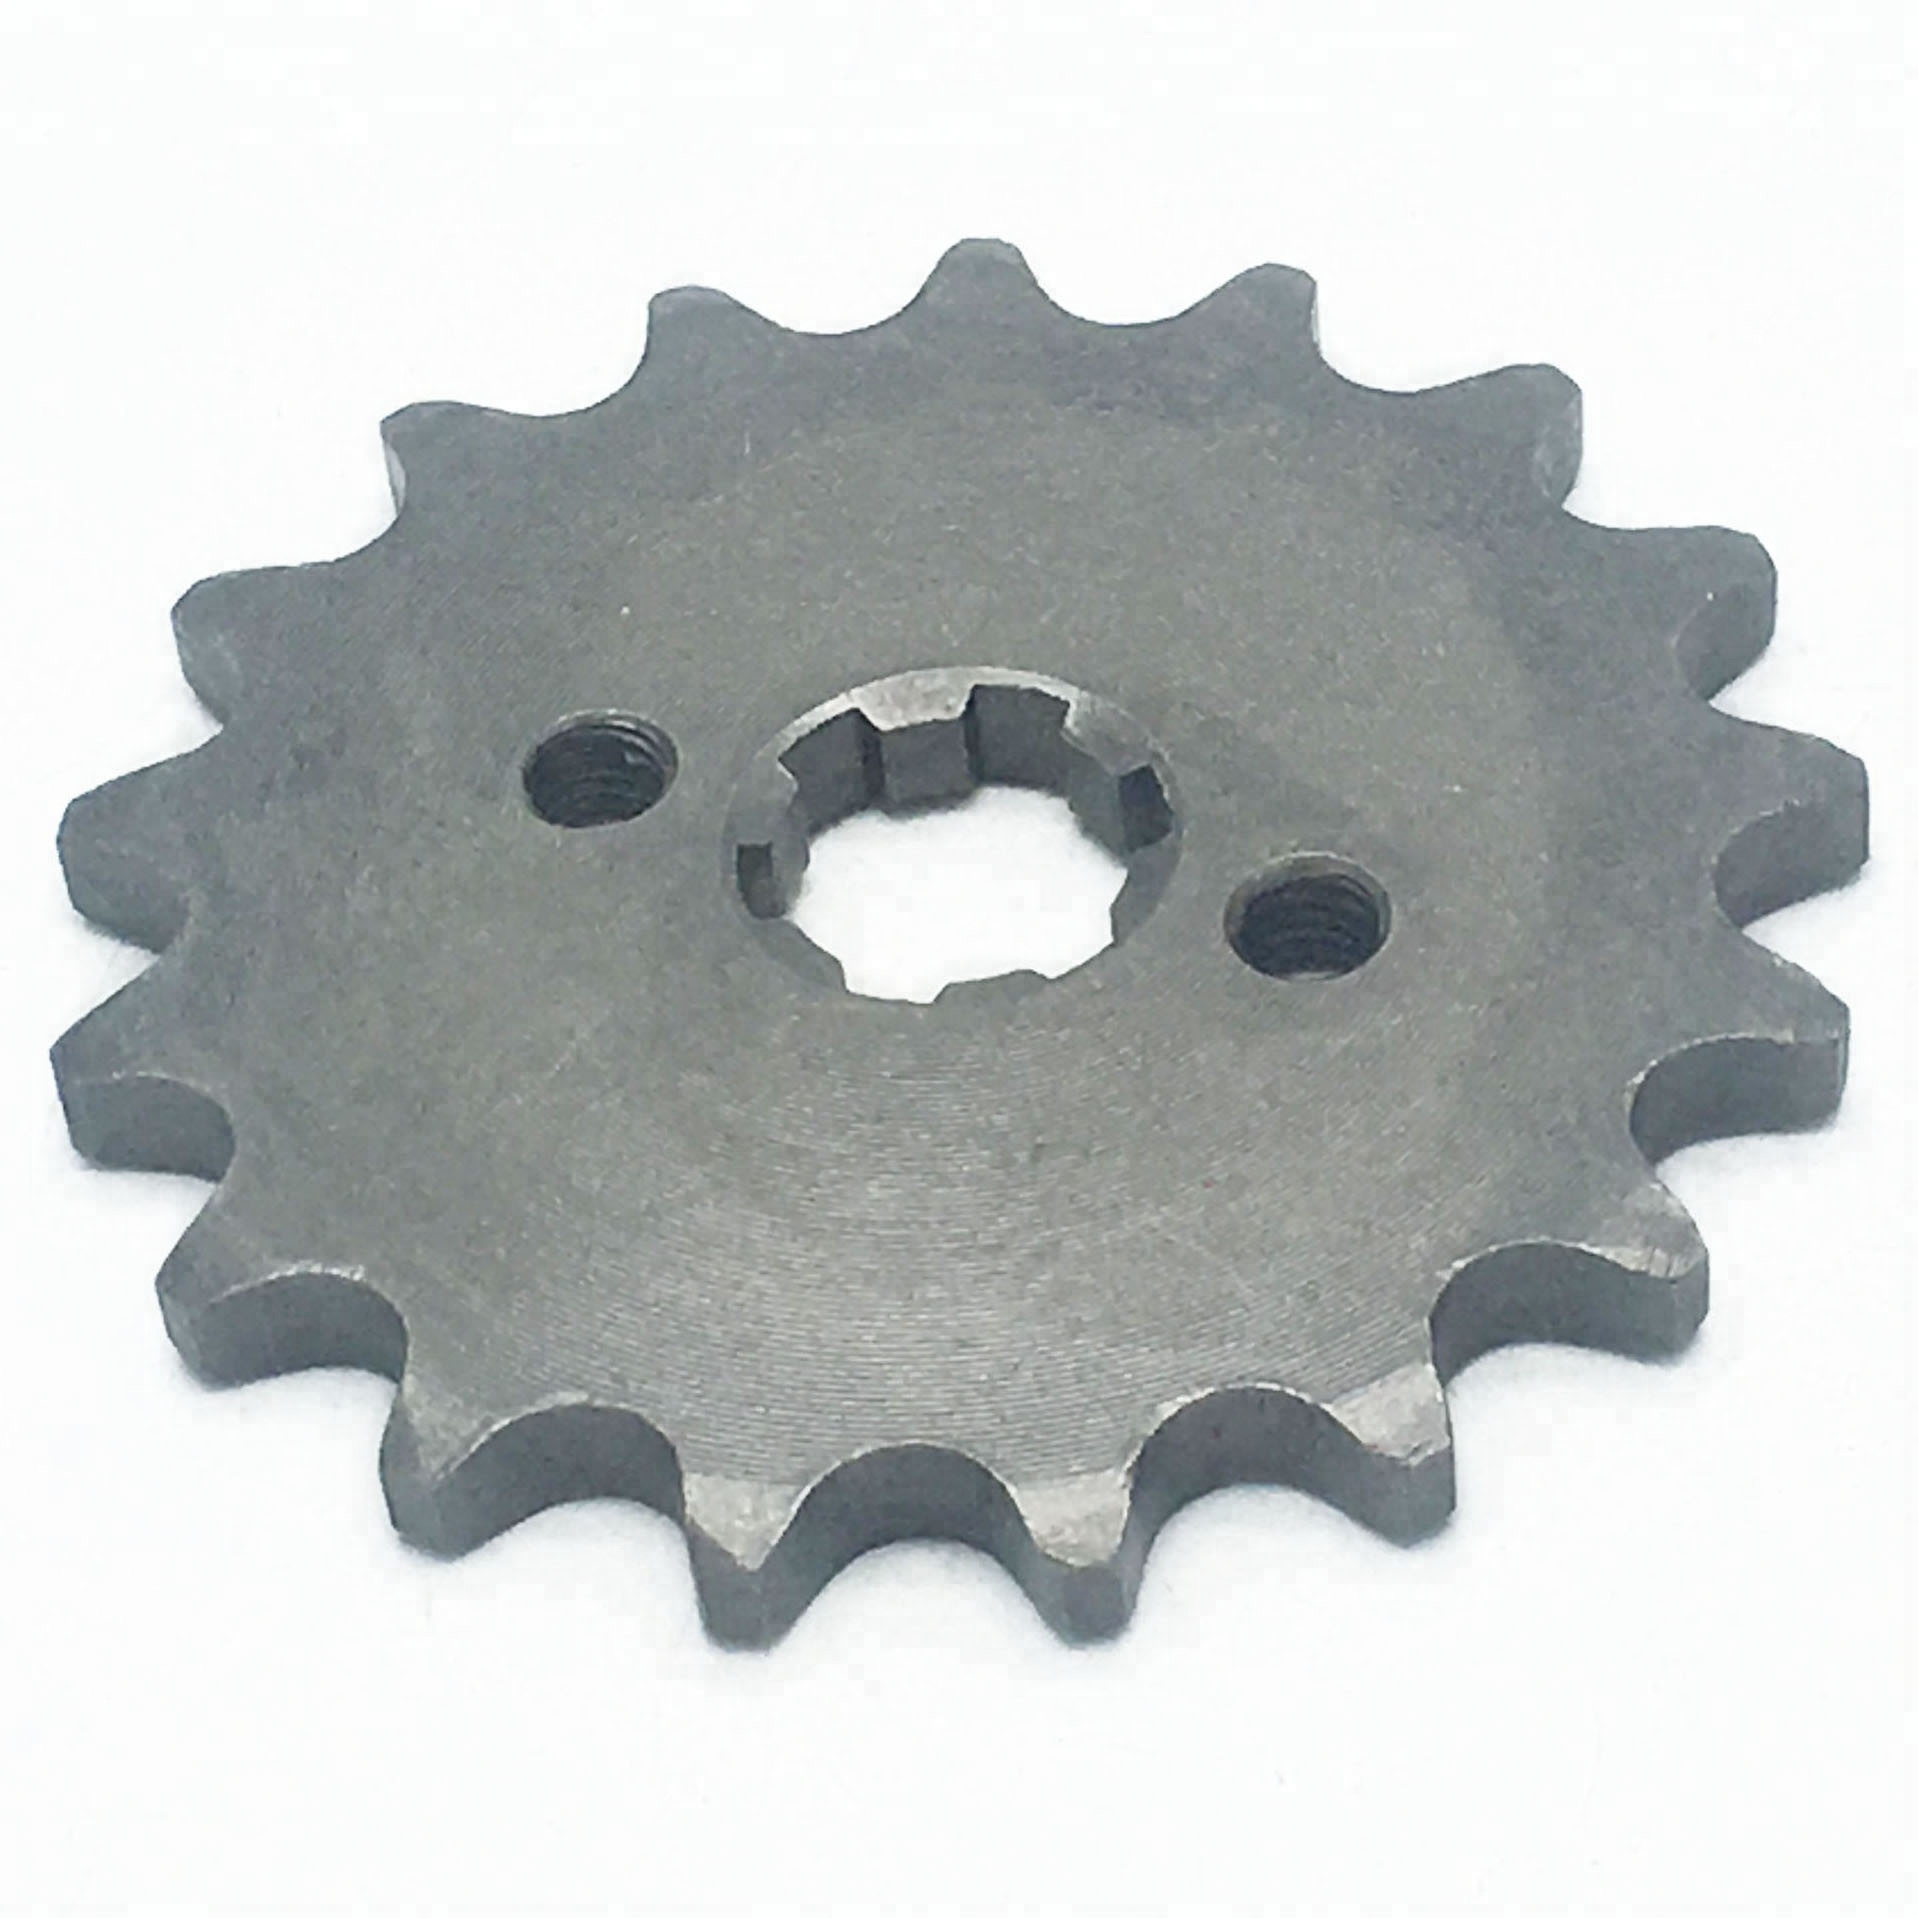 Pit Bike Front Drive Sprocket 15 Tooth 428 Pitch 20mm Centre Hole For Pit Bikes /& Quads